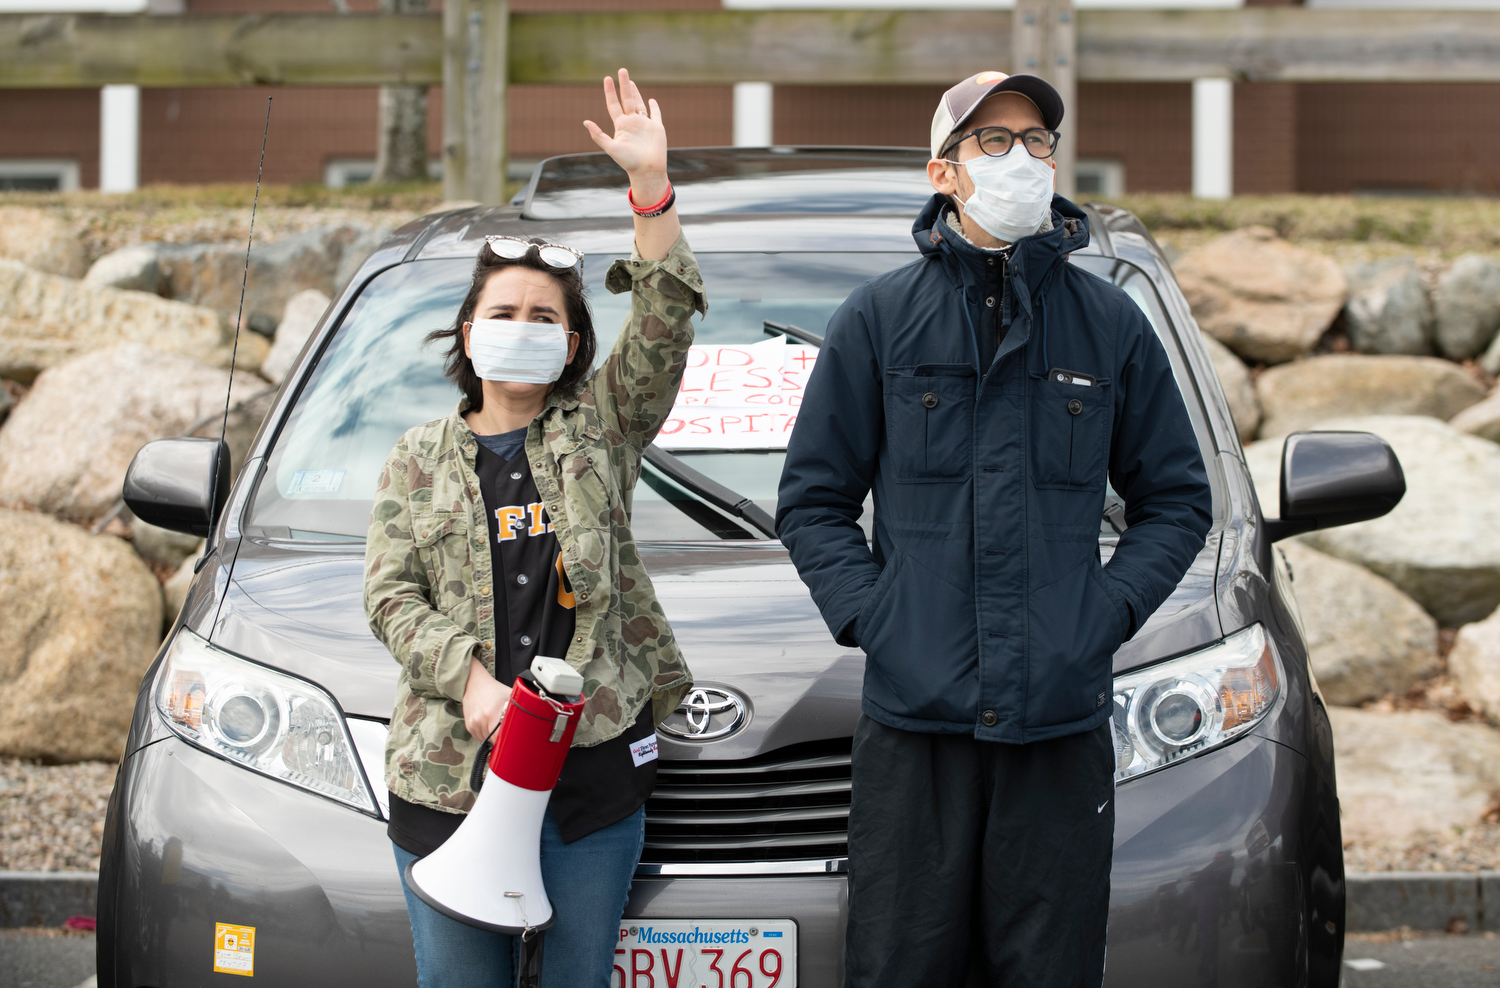 HYANNIS - Organizer Inna Taylor, youth director at Grace Church, and her husband Andrew Taylor wave to healthcare works from the Cape Cod Hospital parking lot on Friday, April 10, 2020.